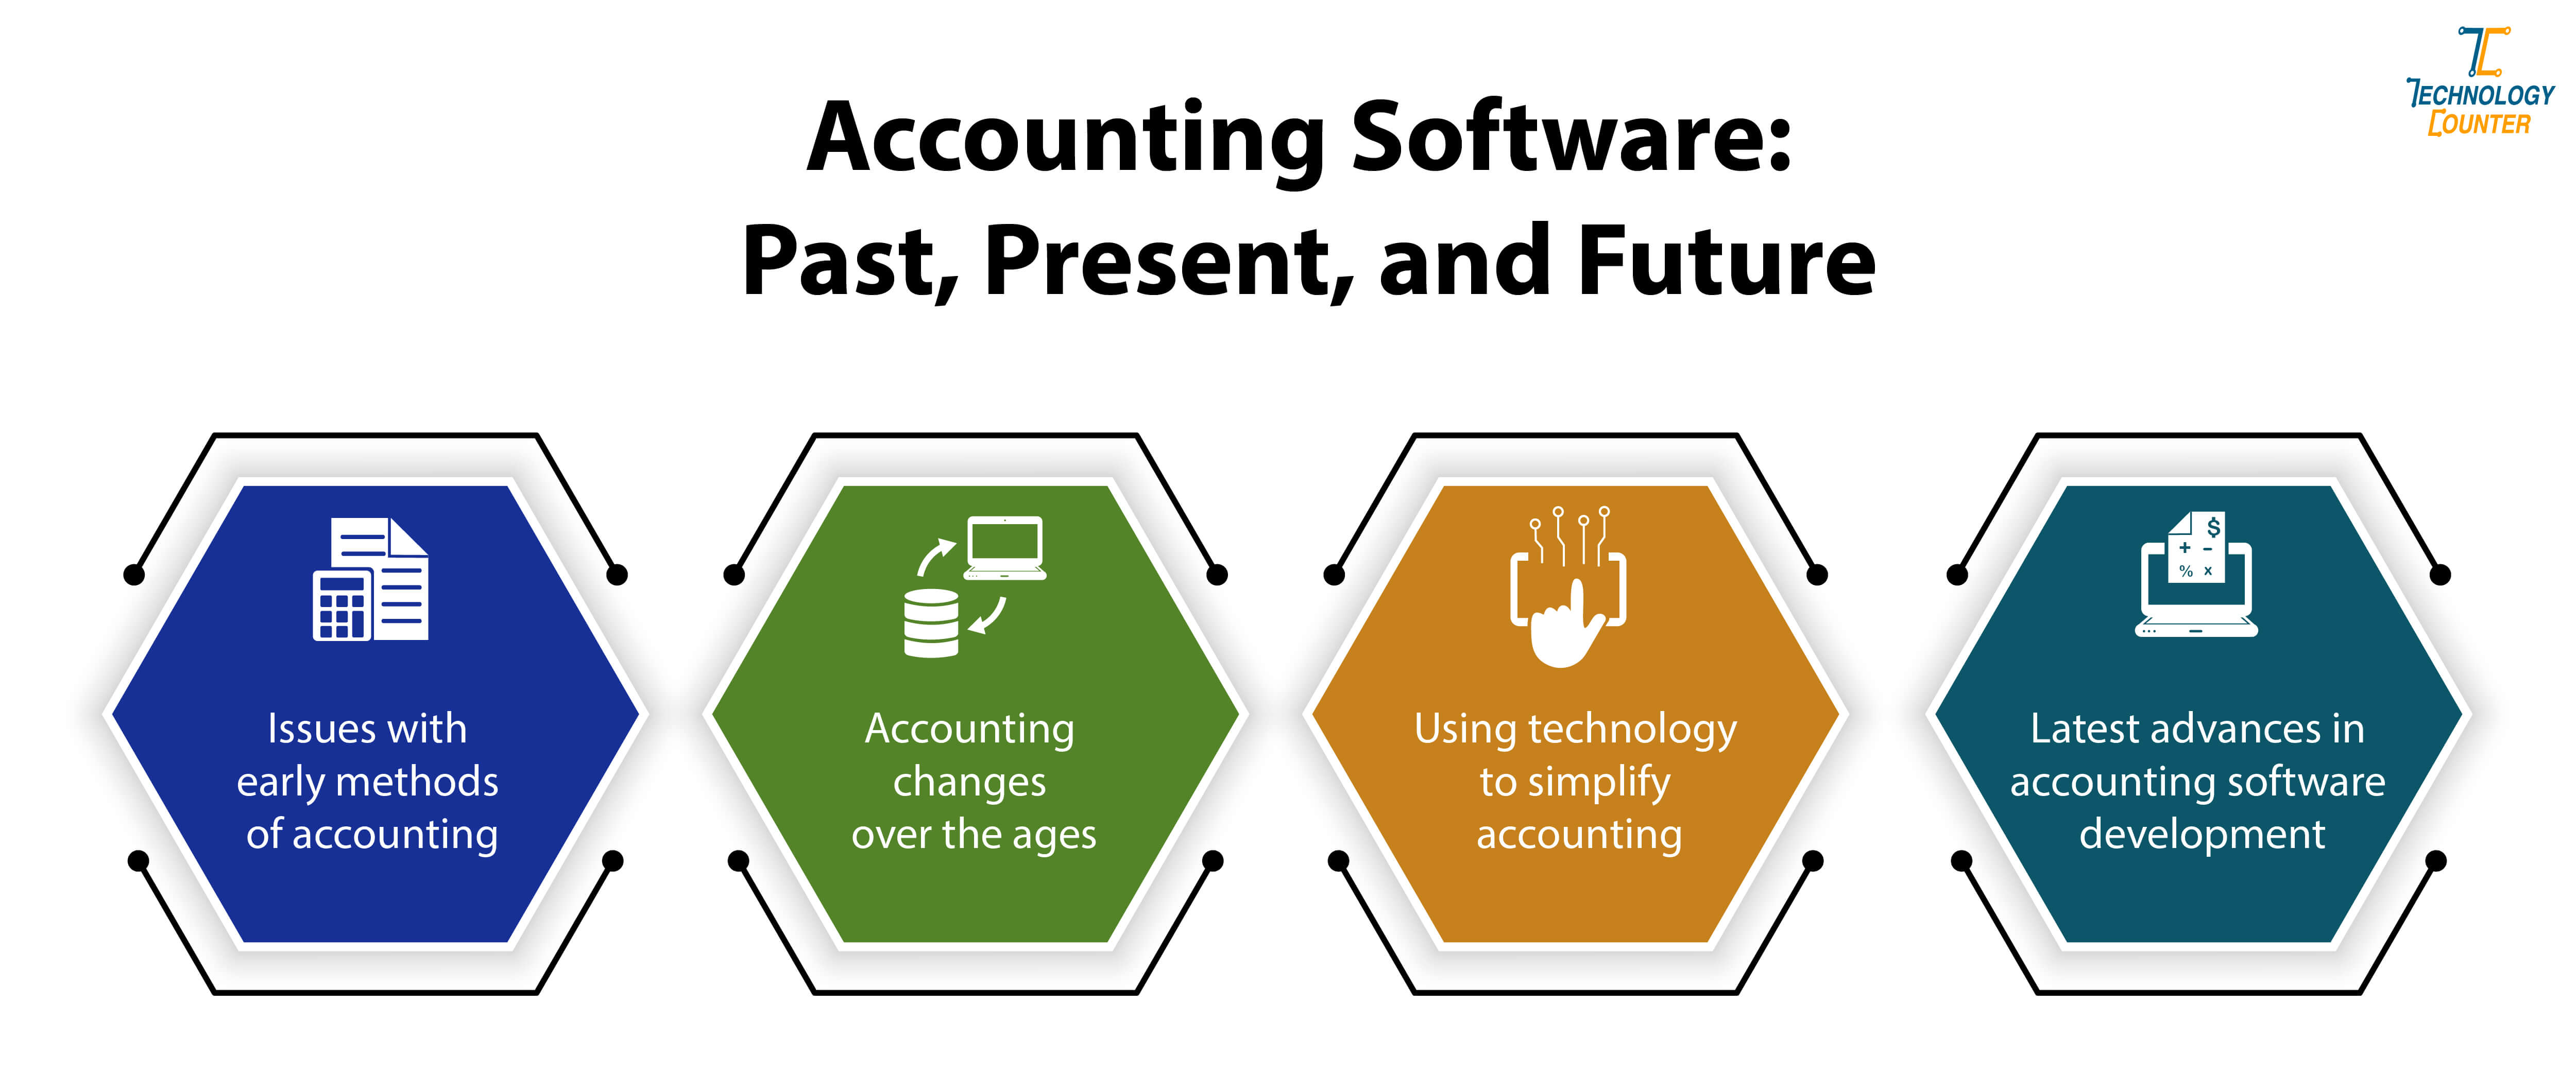 Accounting Software Past Present and Future